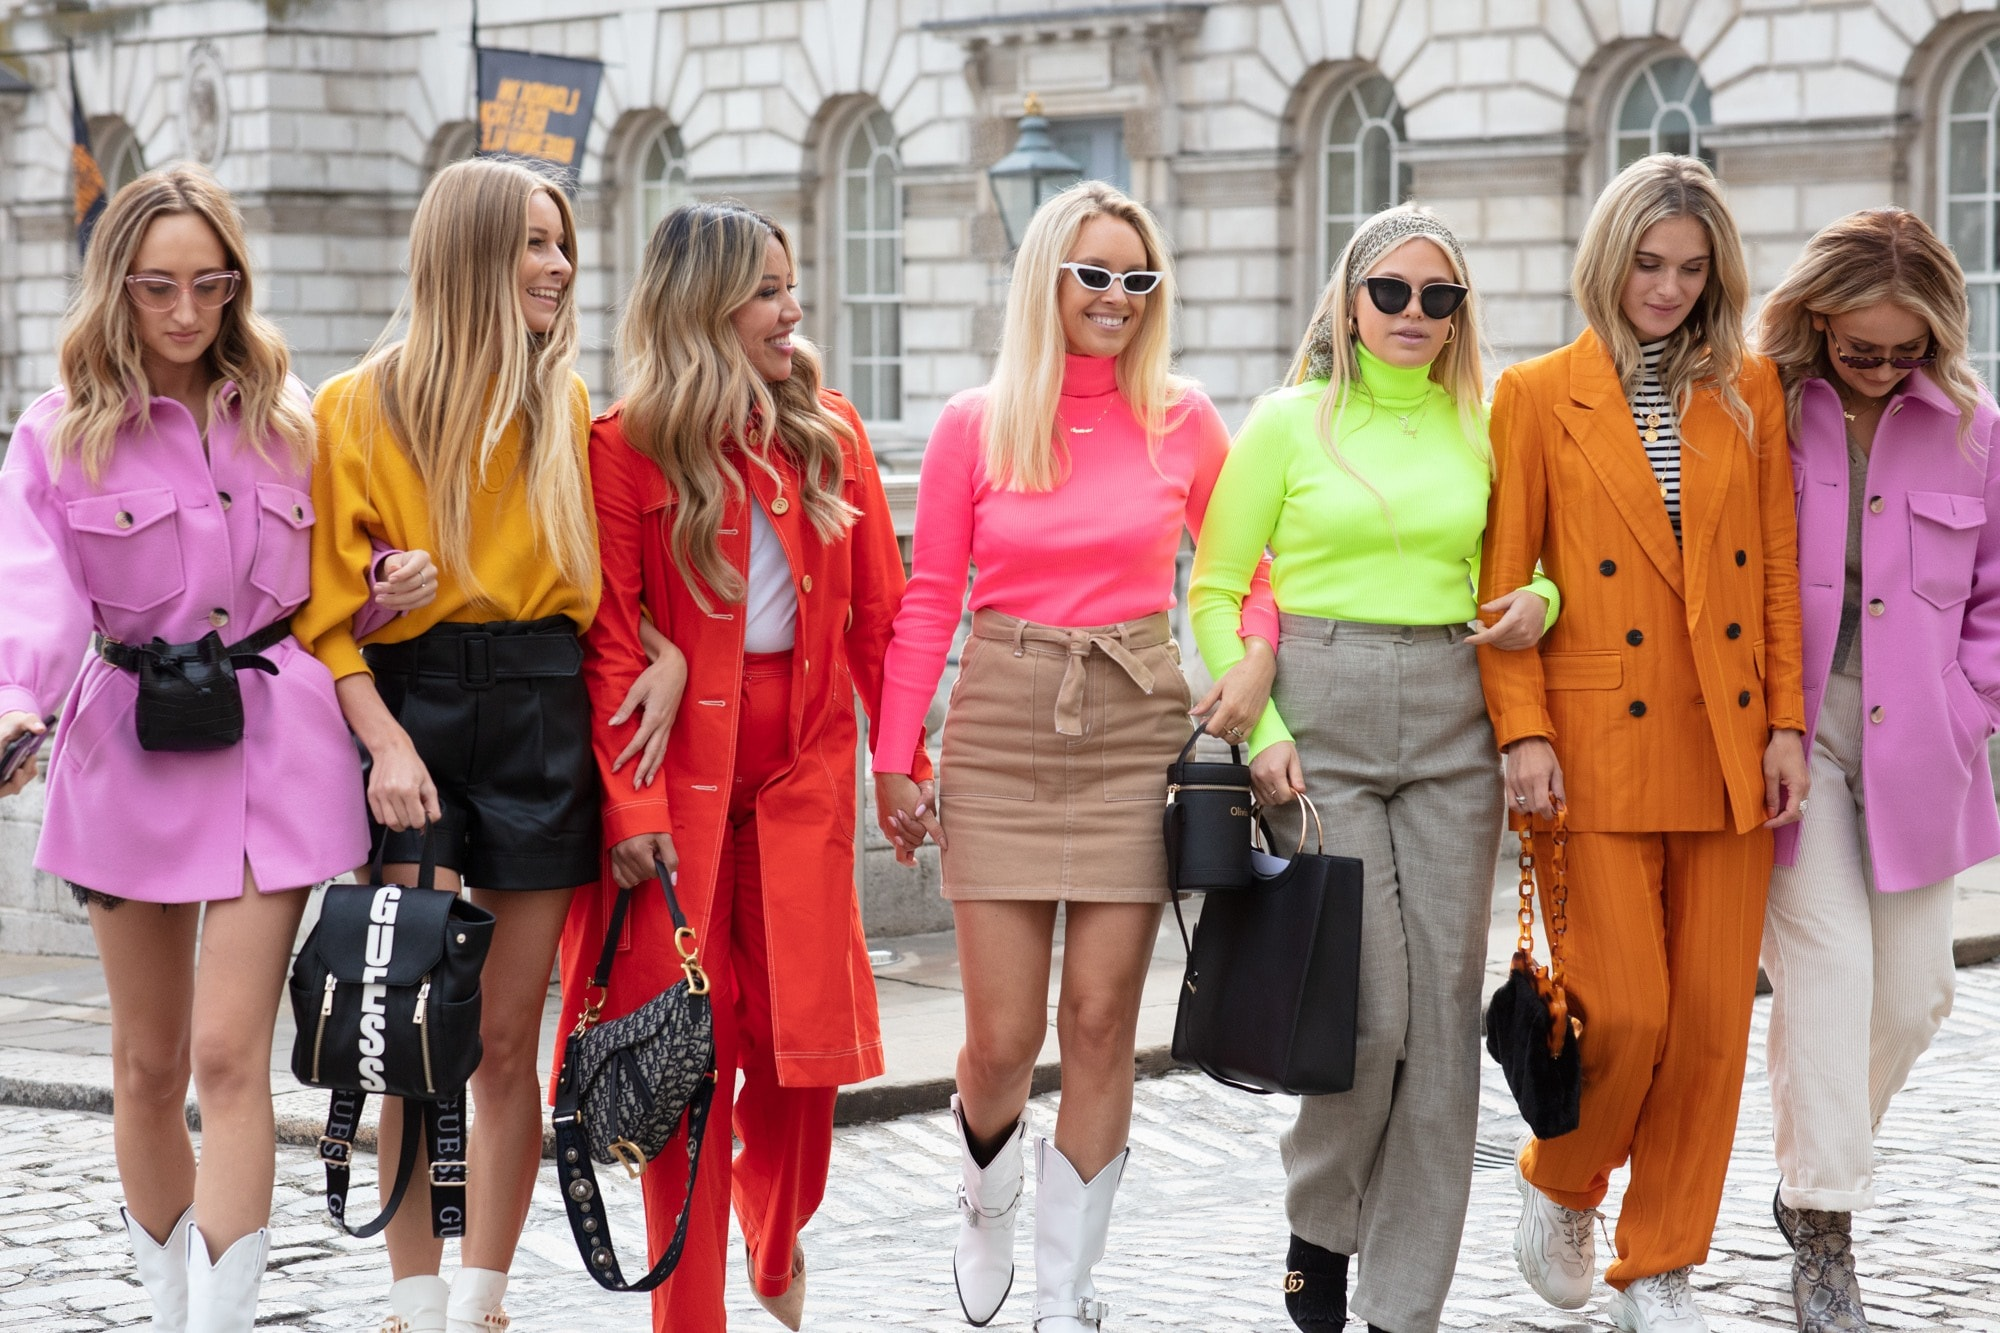 London Fashion Week street style hair: Close up shot of a group of street style women with various shades of blonde hair, wearing bright orange and pink clothing while posing together